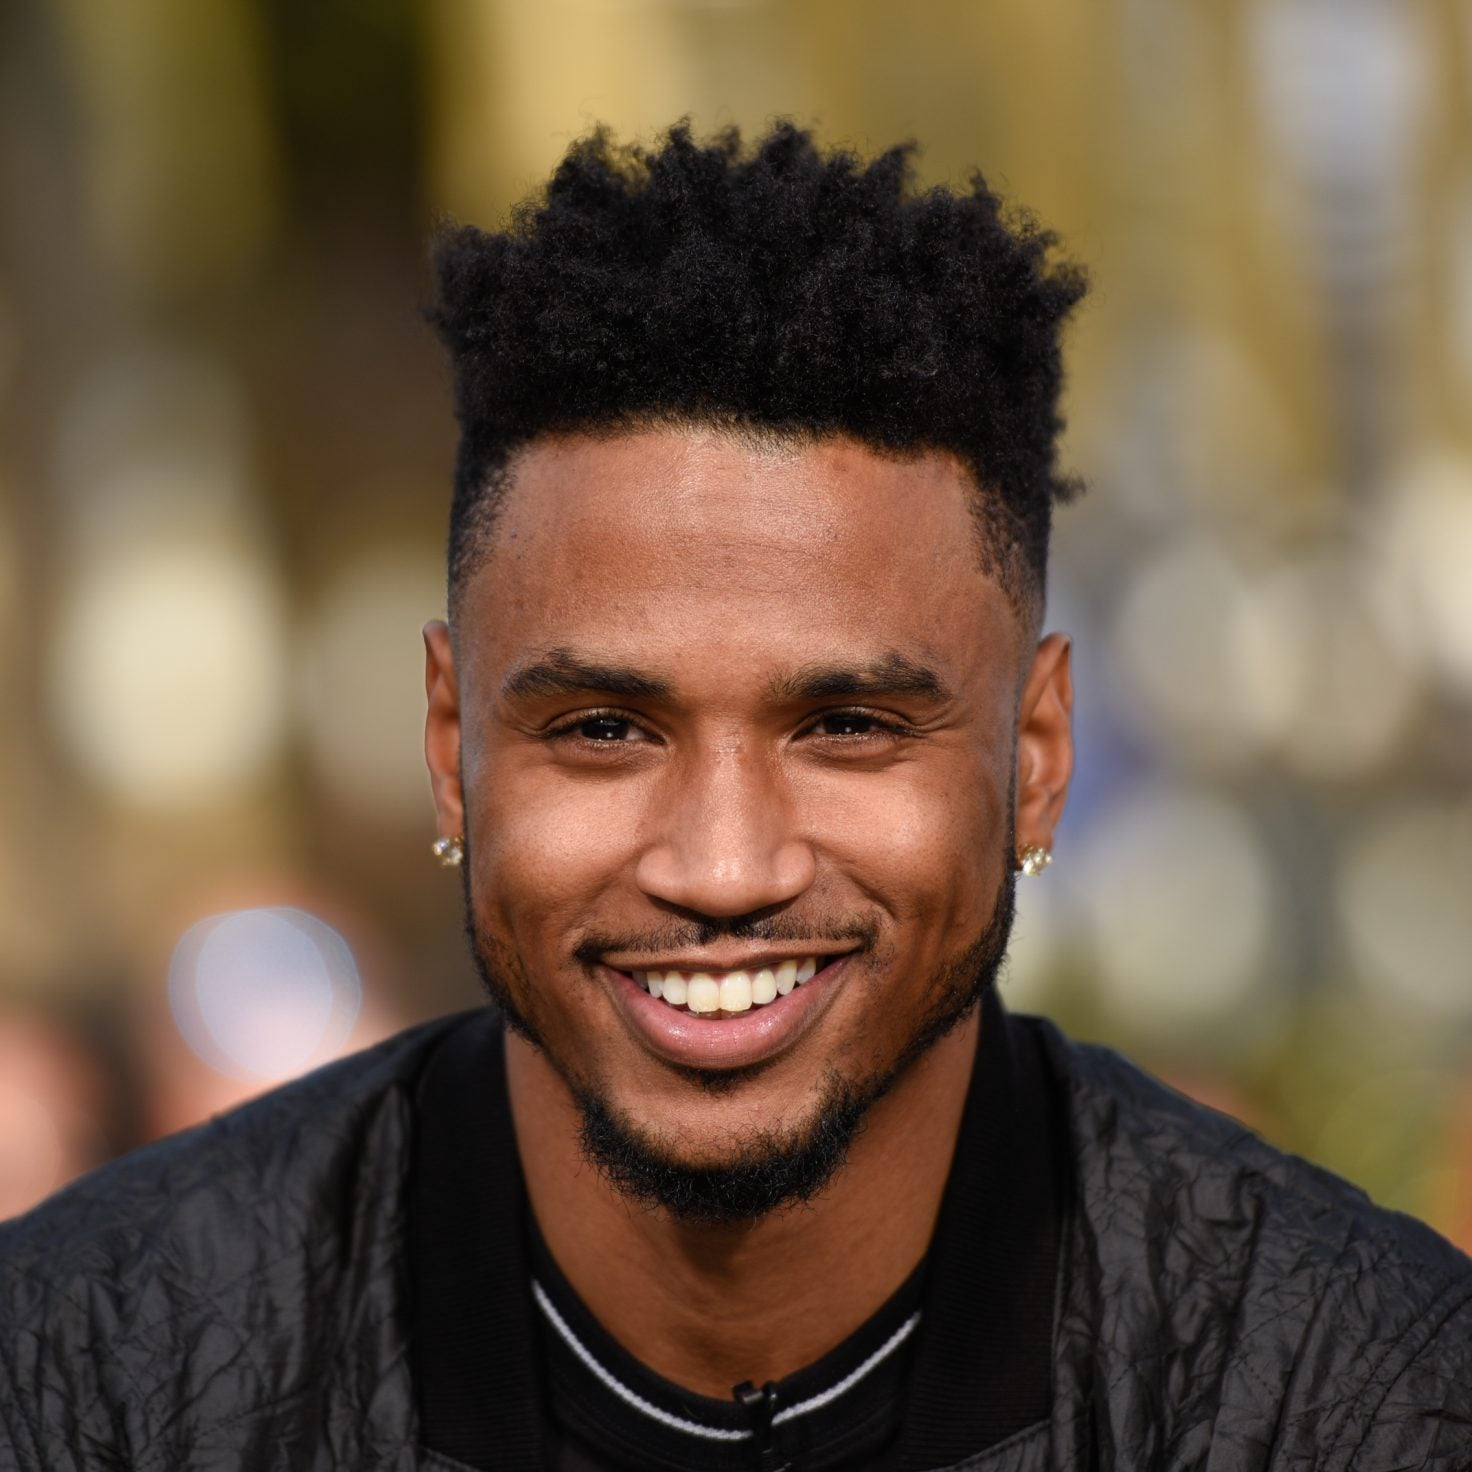 No Lies Told! Trey Songz Schools A Fan About Why We Celebrate Black Love